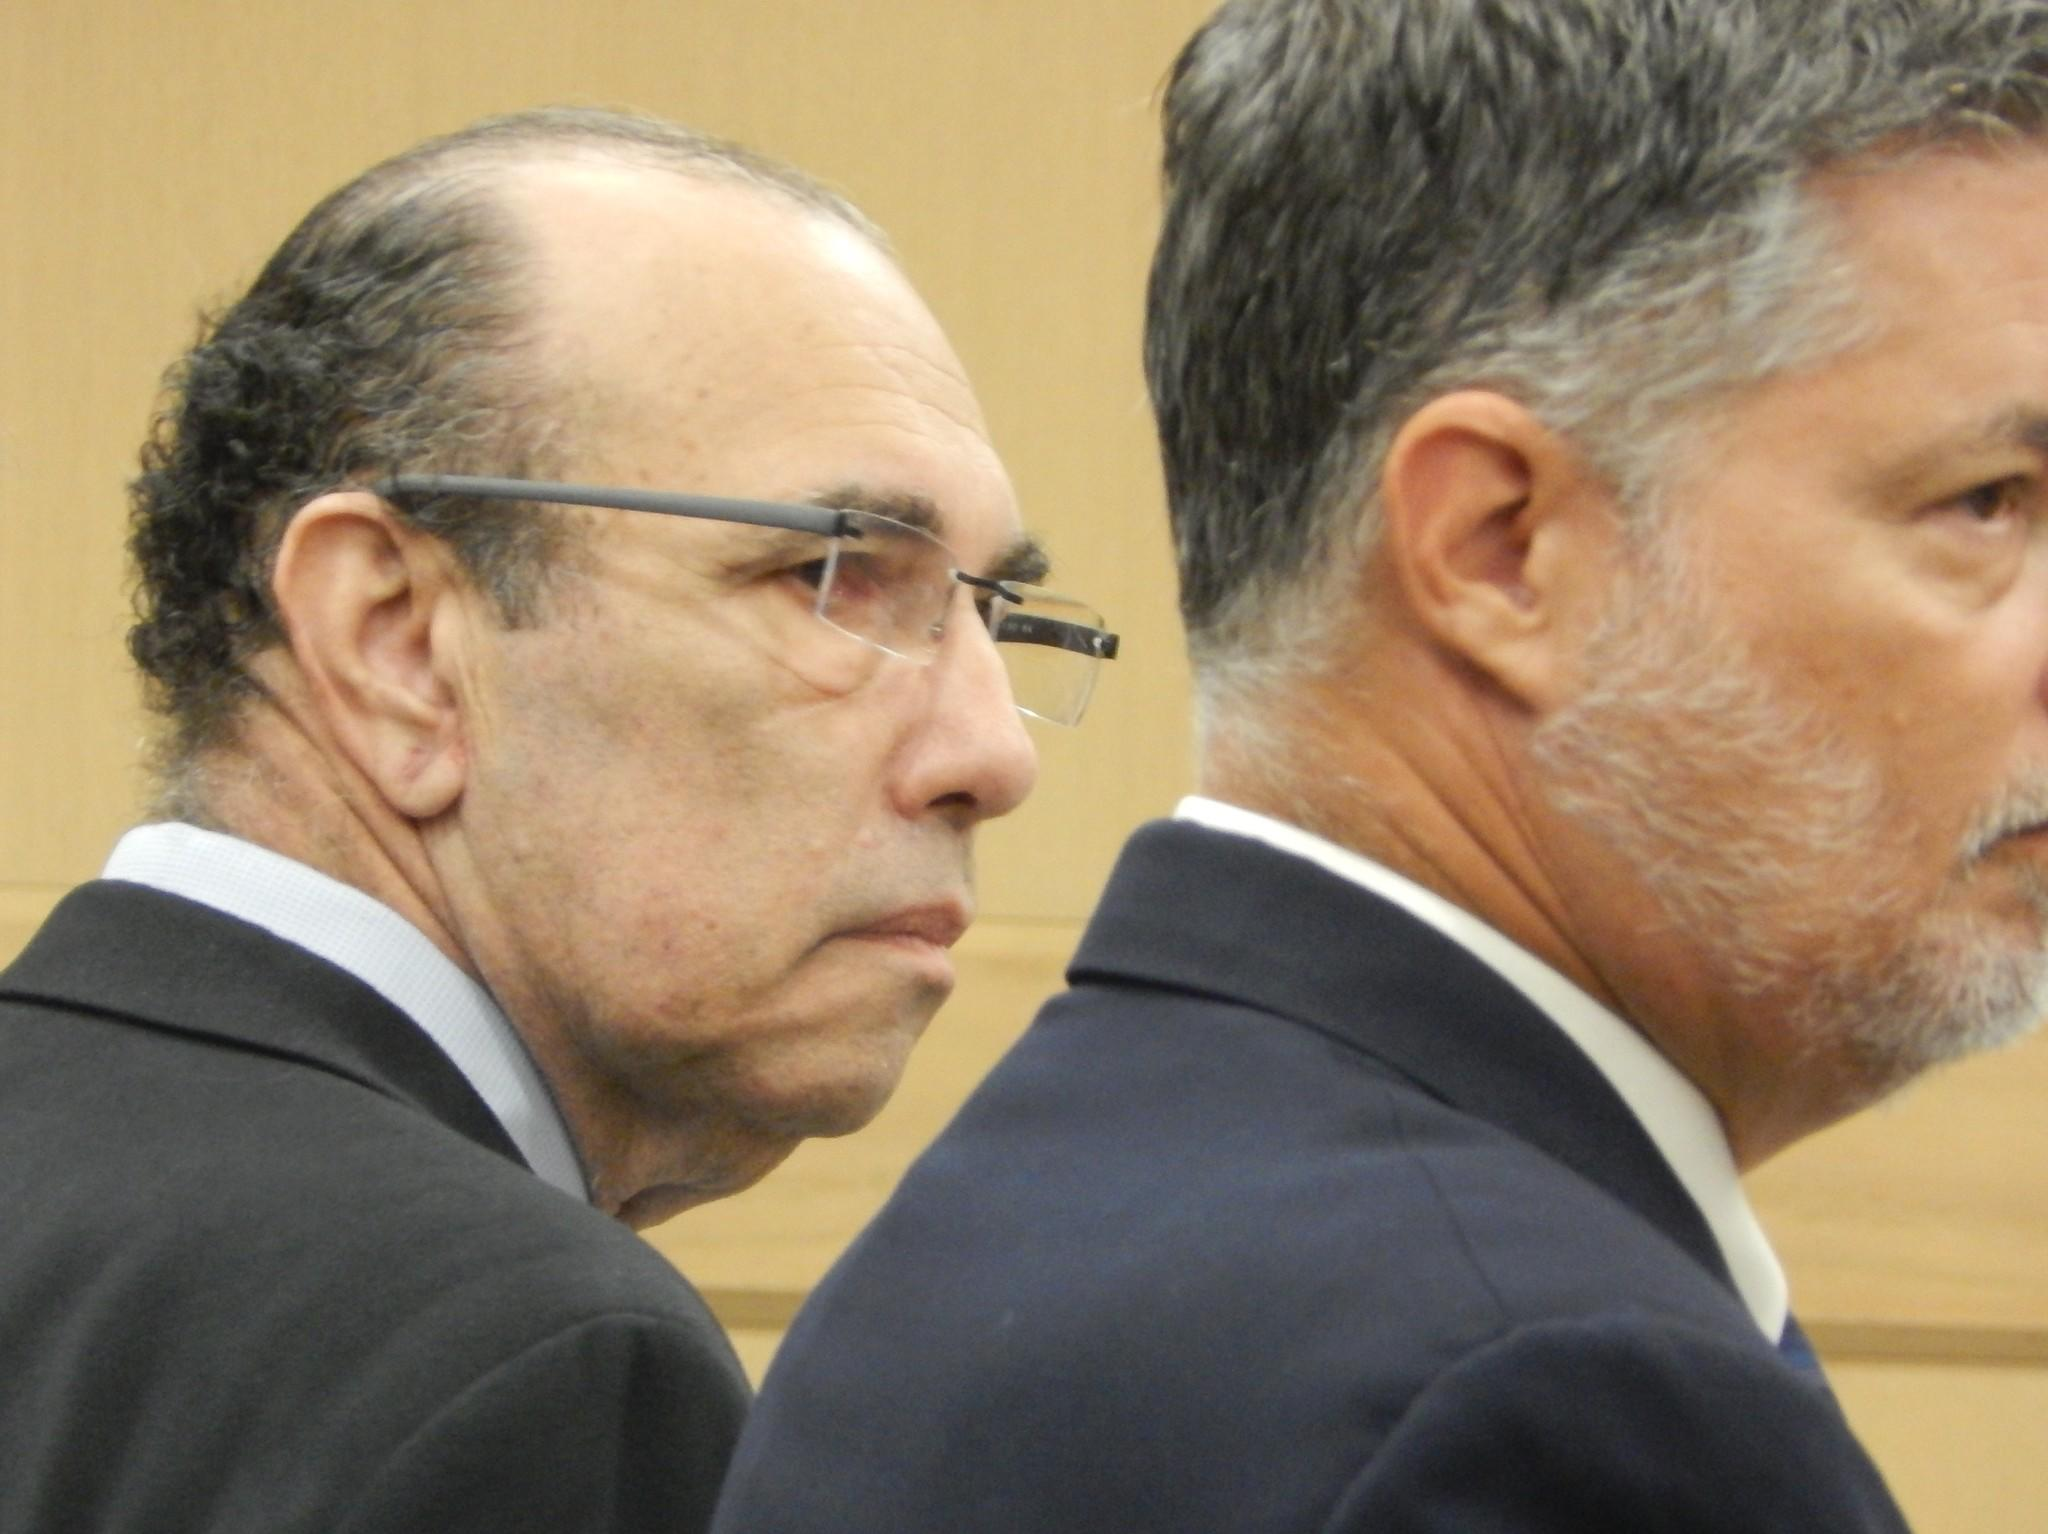 Robert Hittner, left, with attorney Frank Negron during a hearing Jan. 2, 2014. Hittner later pled guilty to three counts of fraud.